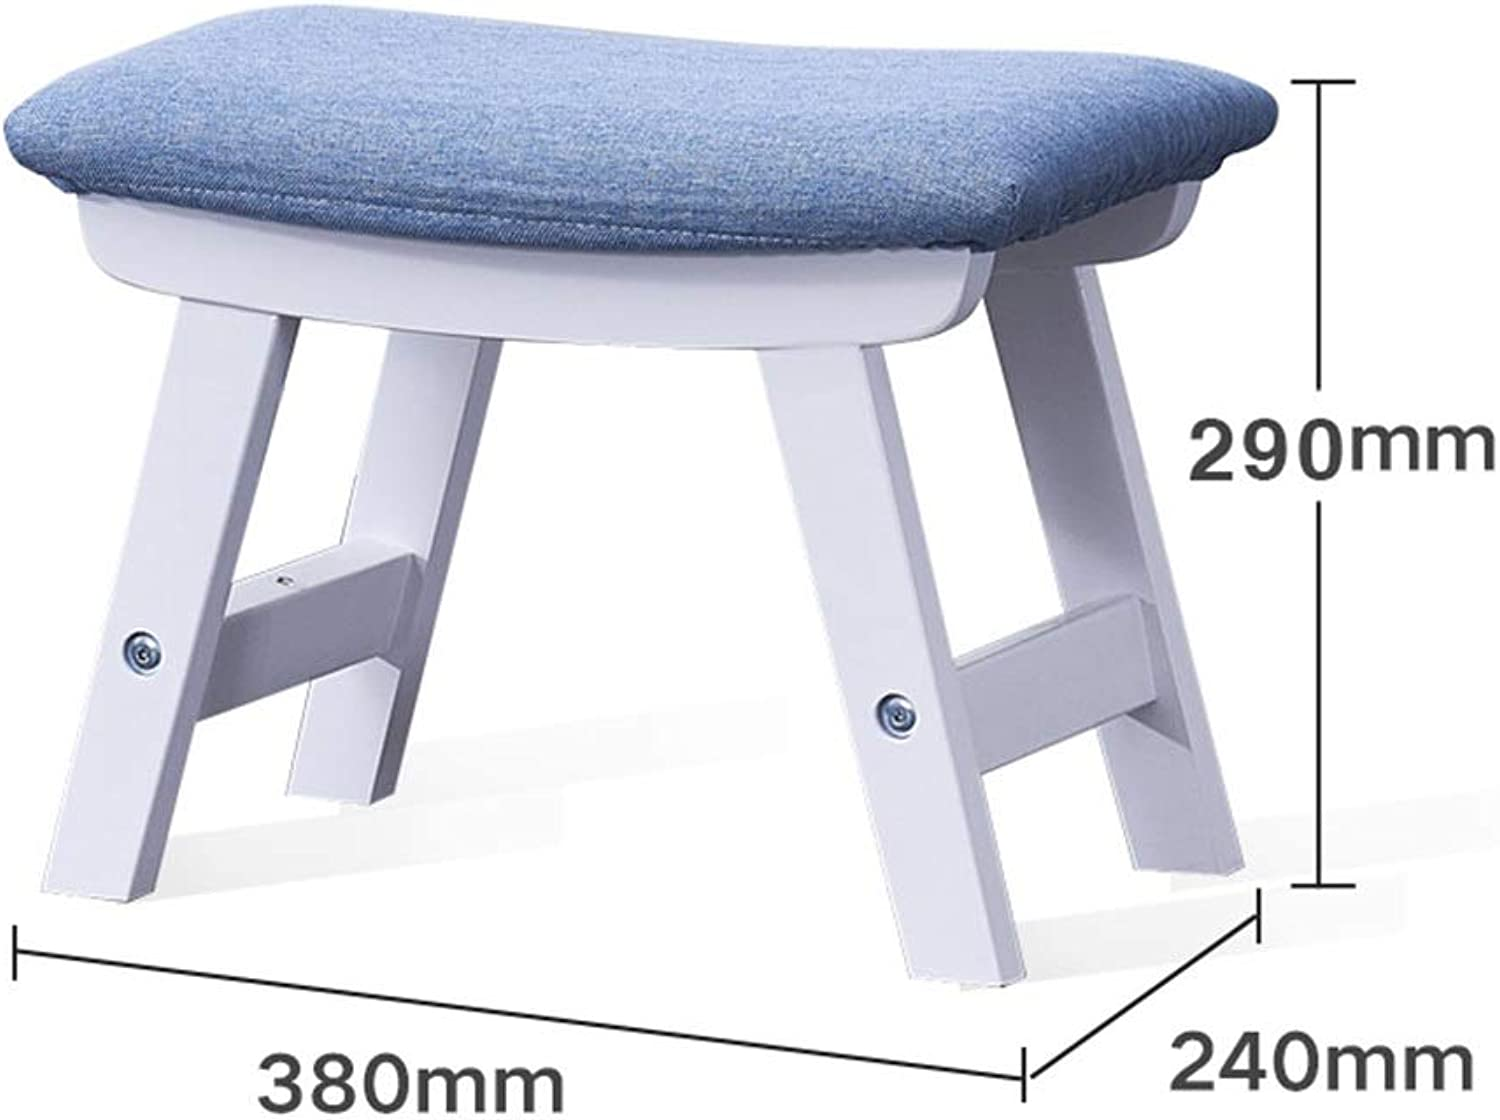 AGLZWY Footstool Sofa Stool Multipurpose Solid Wood Cloth Breathable Non-Slip Portable Square Created Living Room Change shoes Bench Coffee Table, Multiple colors